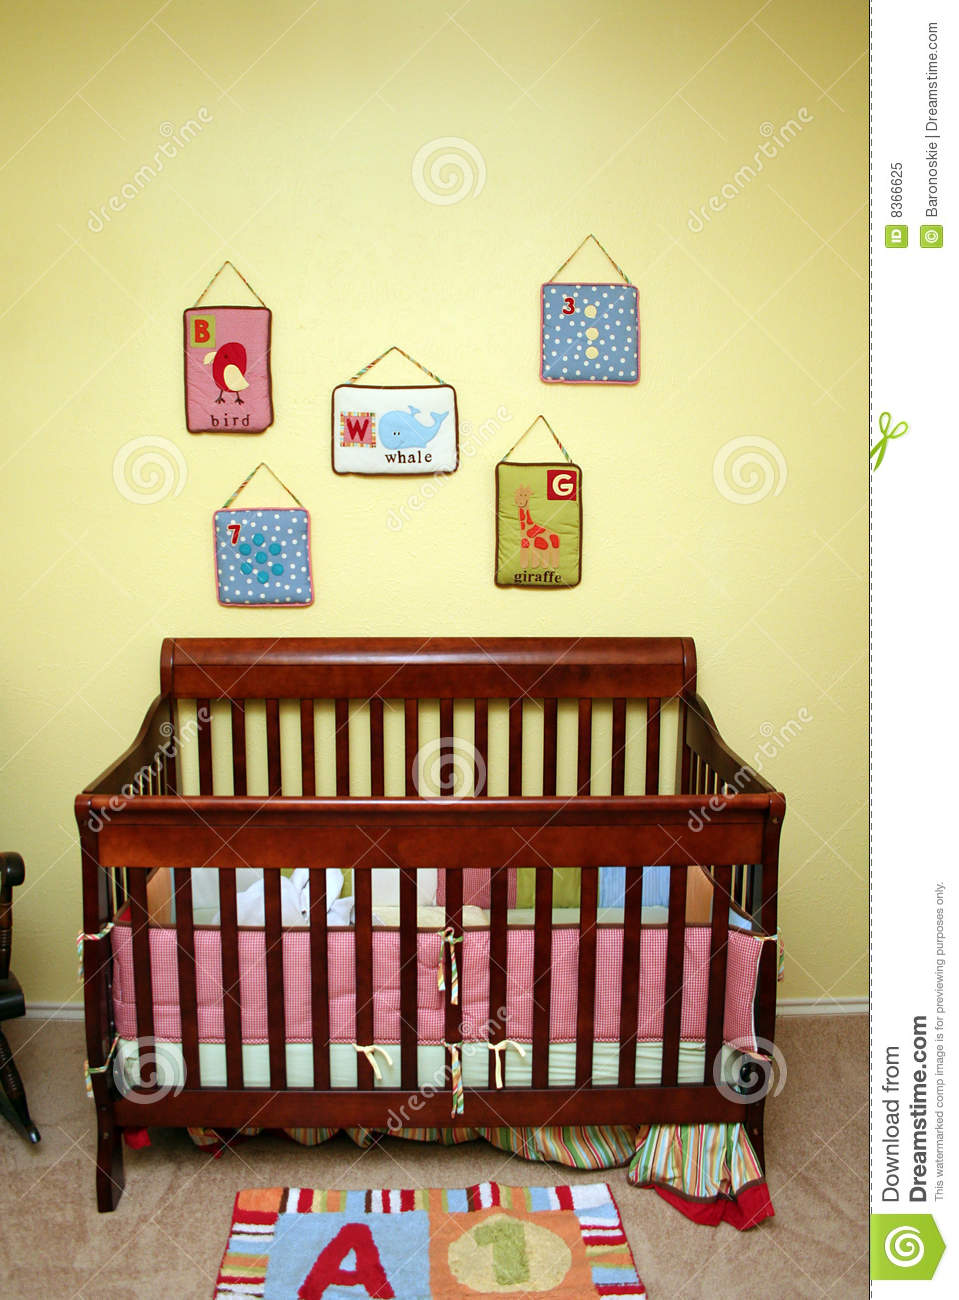 Crib In Nursery Royalty Free Stock Photo Image 8366625